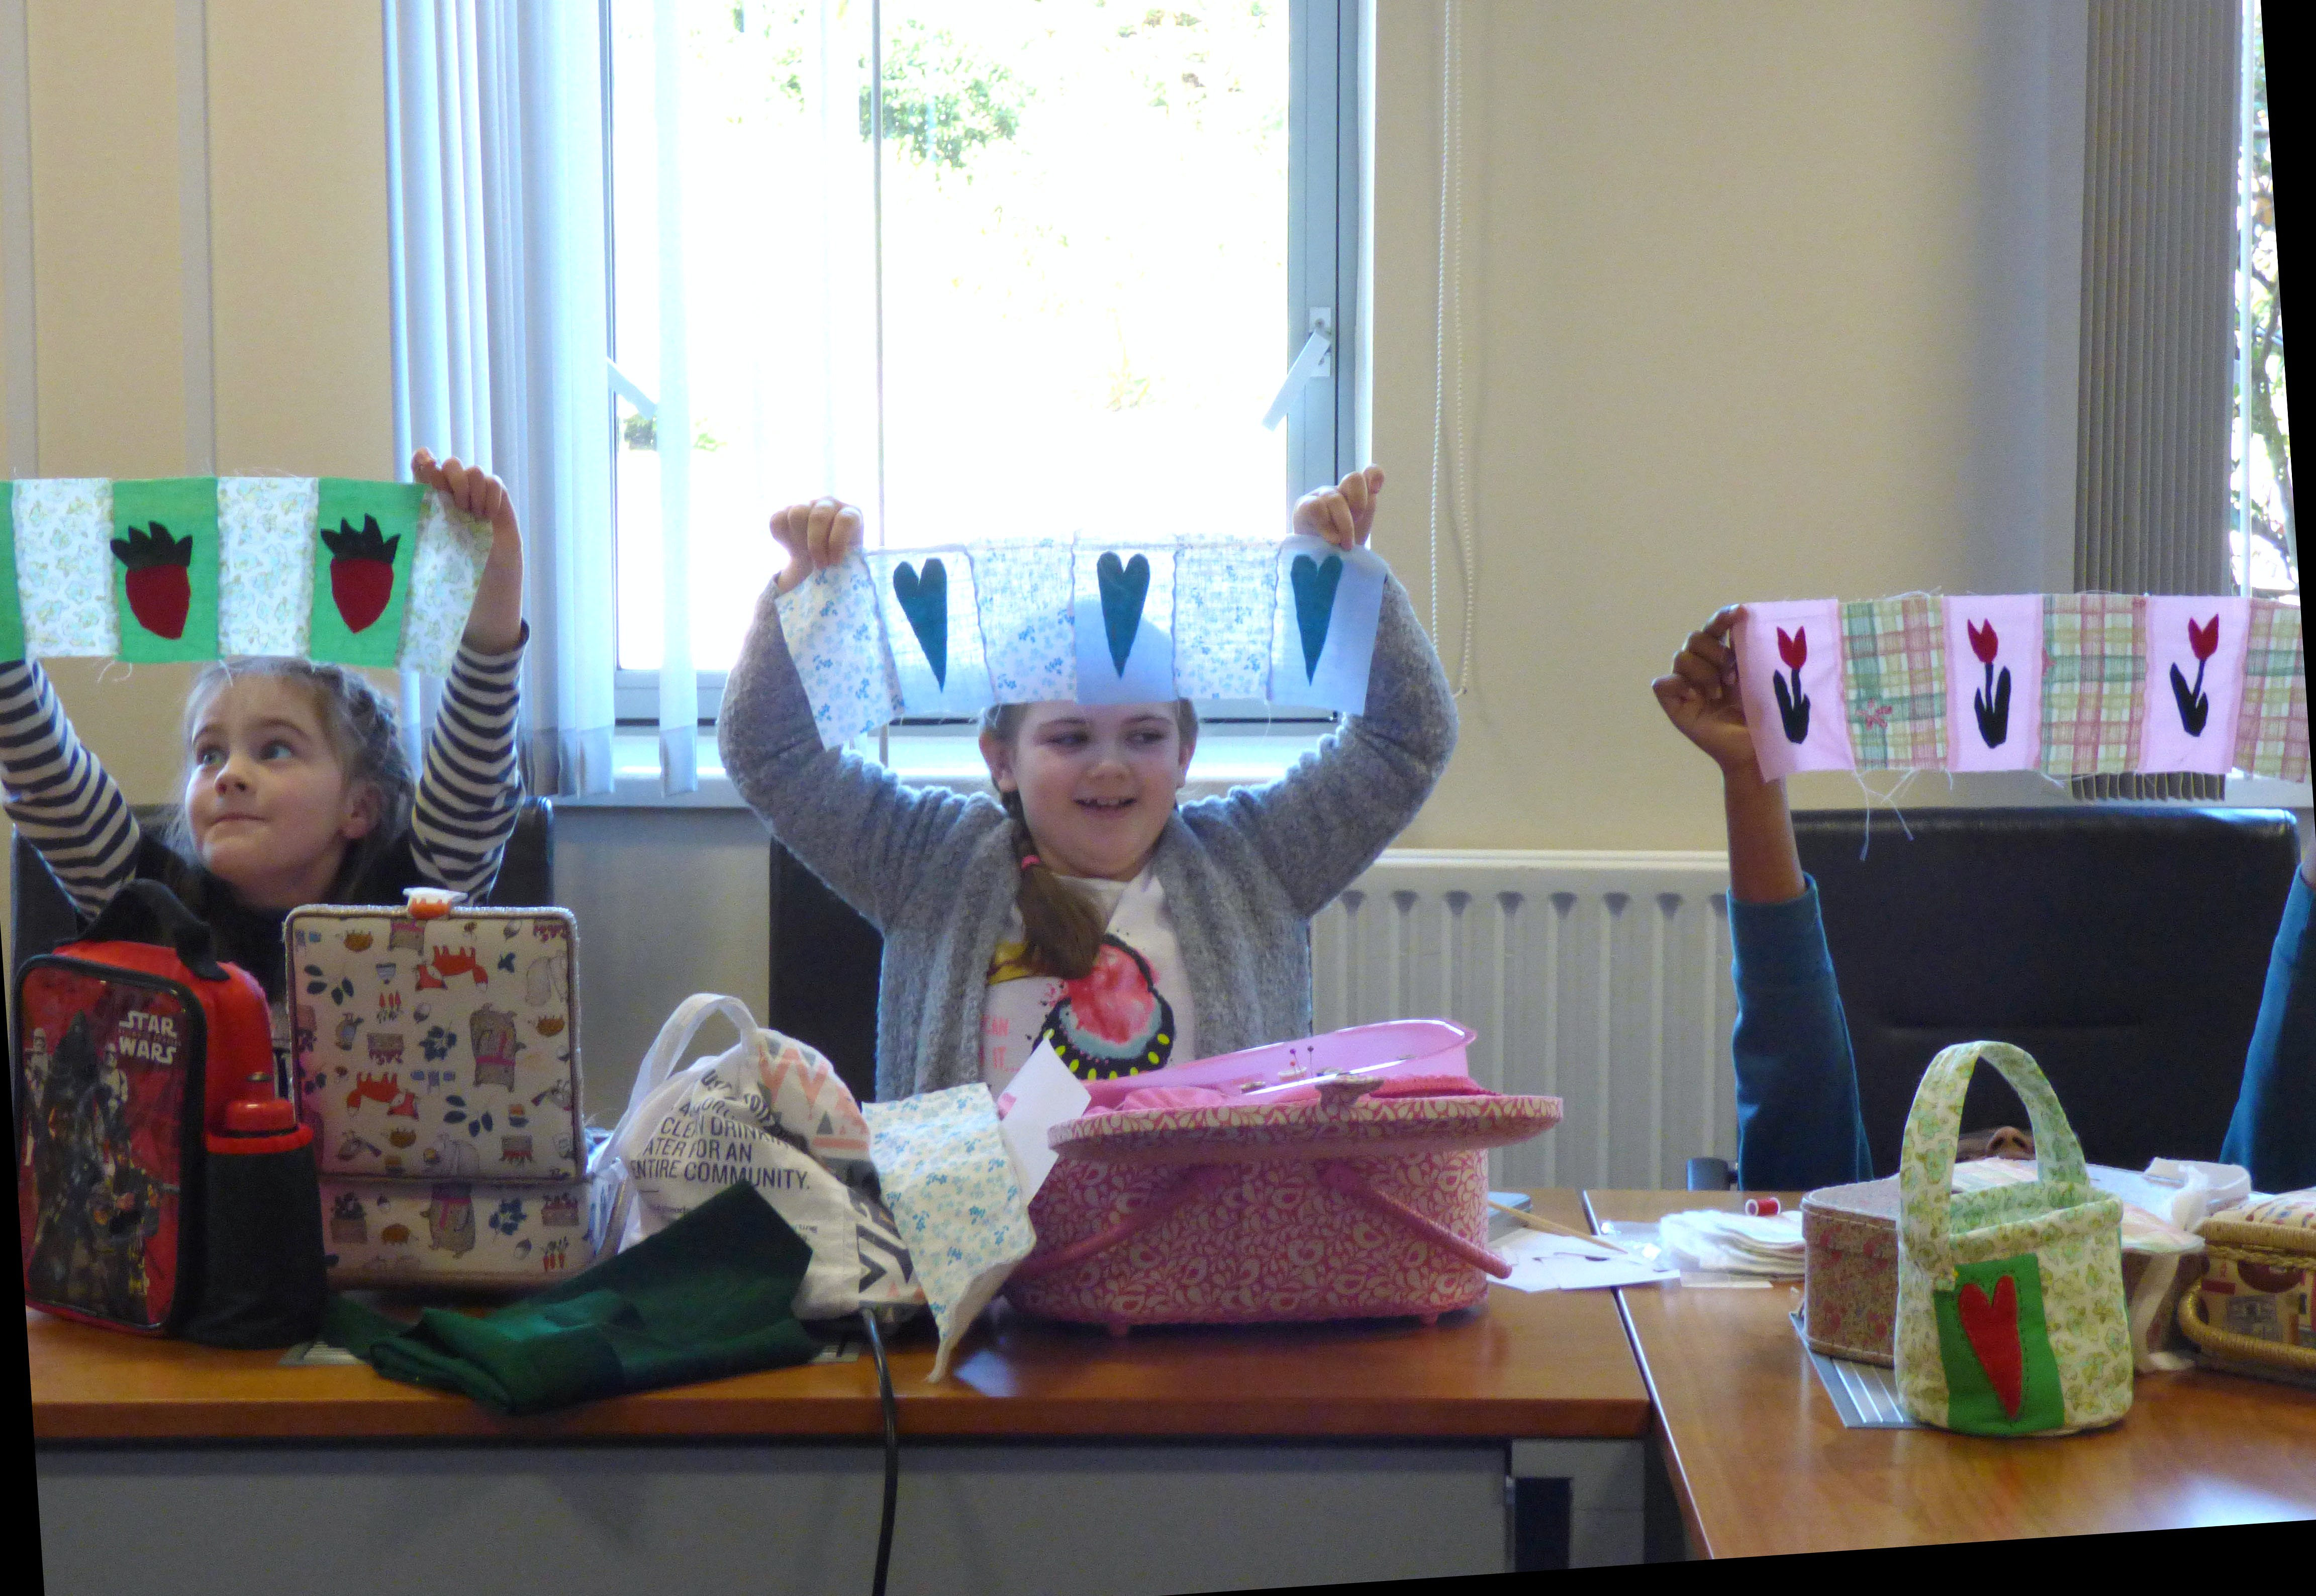 some of our YE group April 2017. We have appliqued some designs for the sides of our Easter baskets